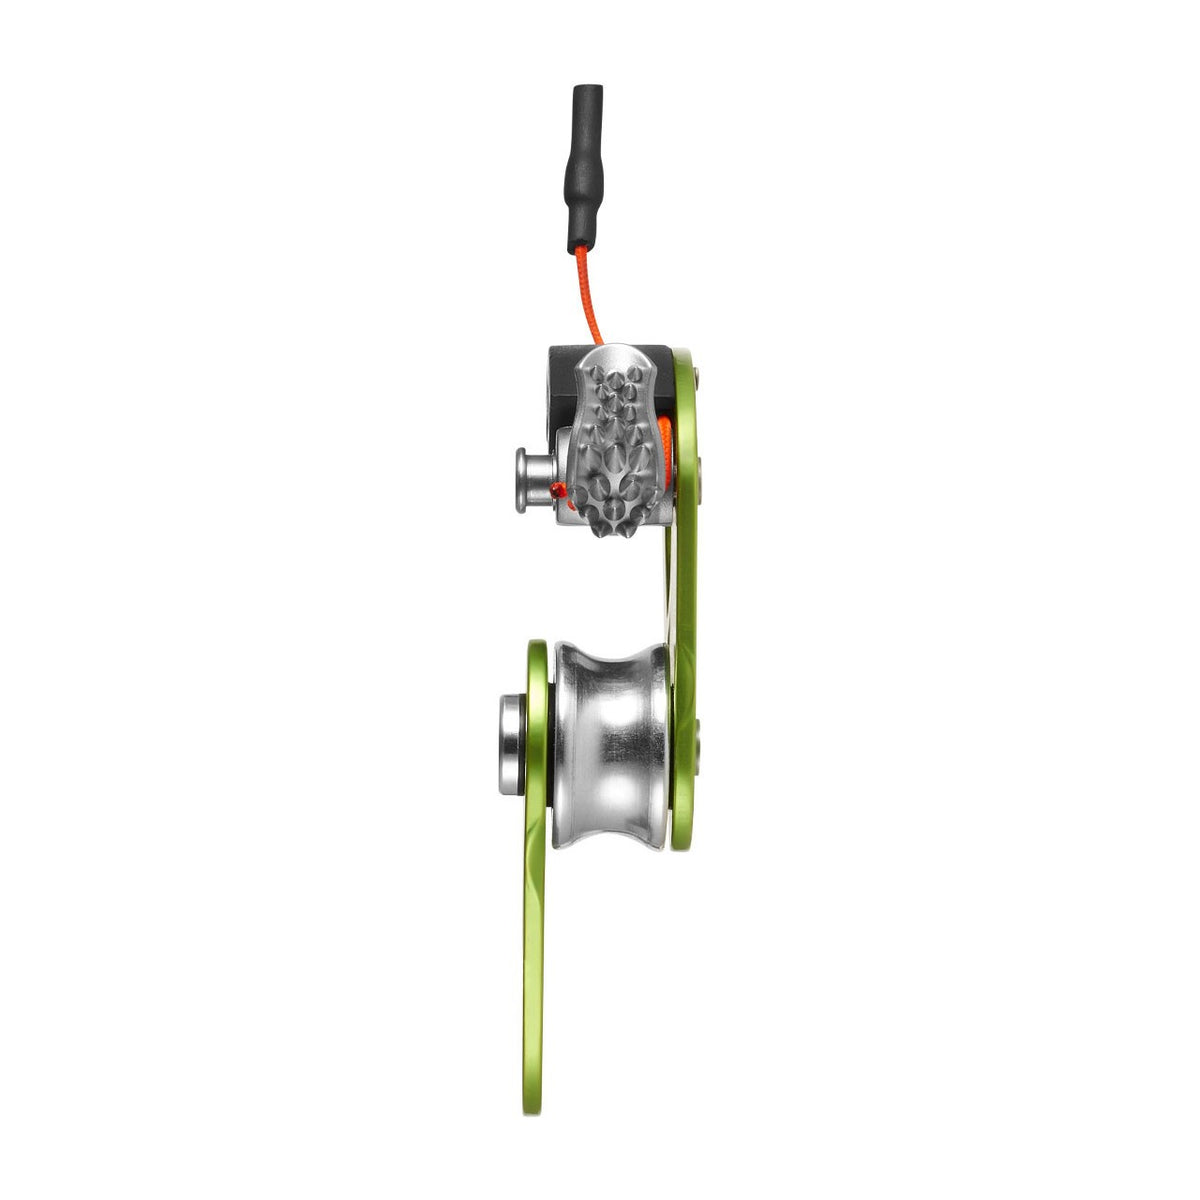 rear view of the Edelrid Spoc showing cam mechanism